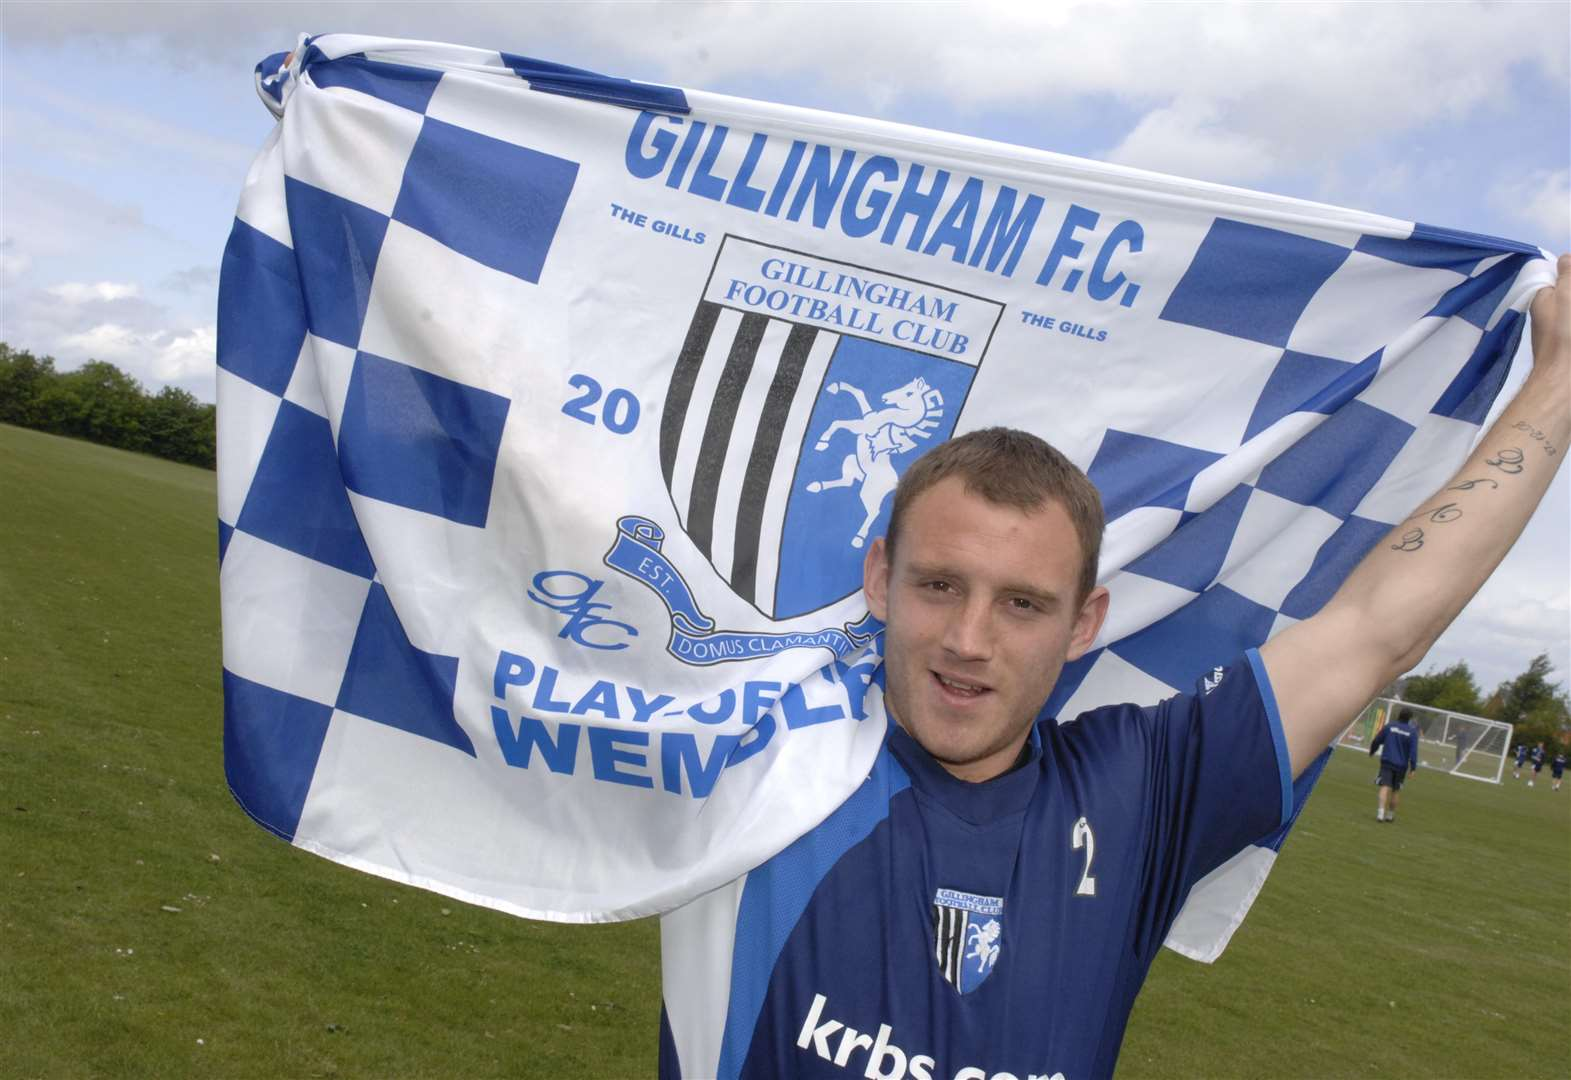 Fuller back with Gills